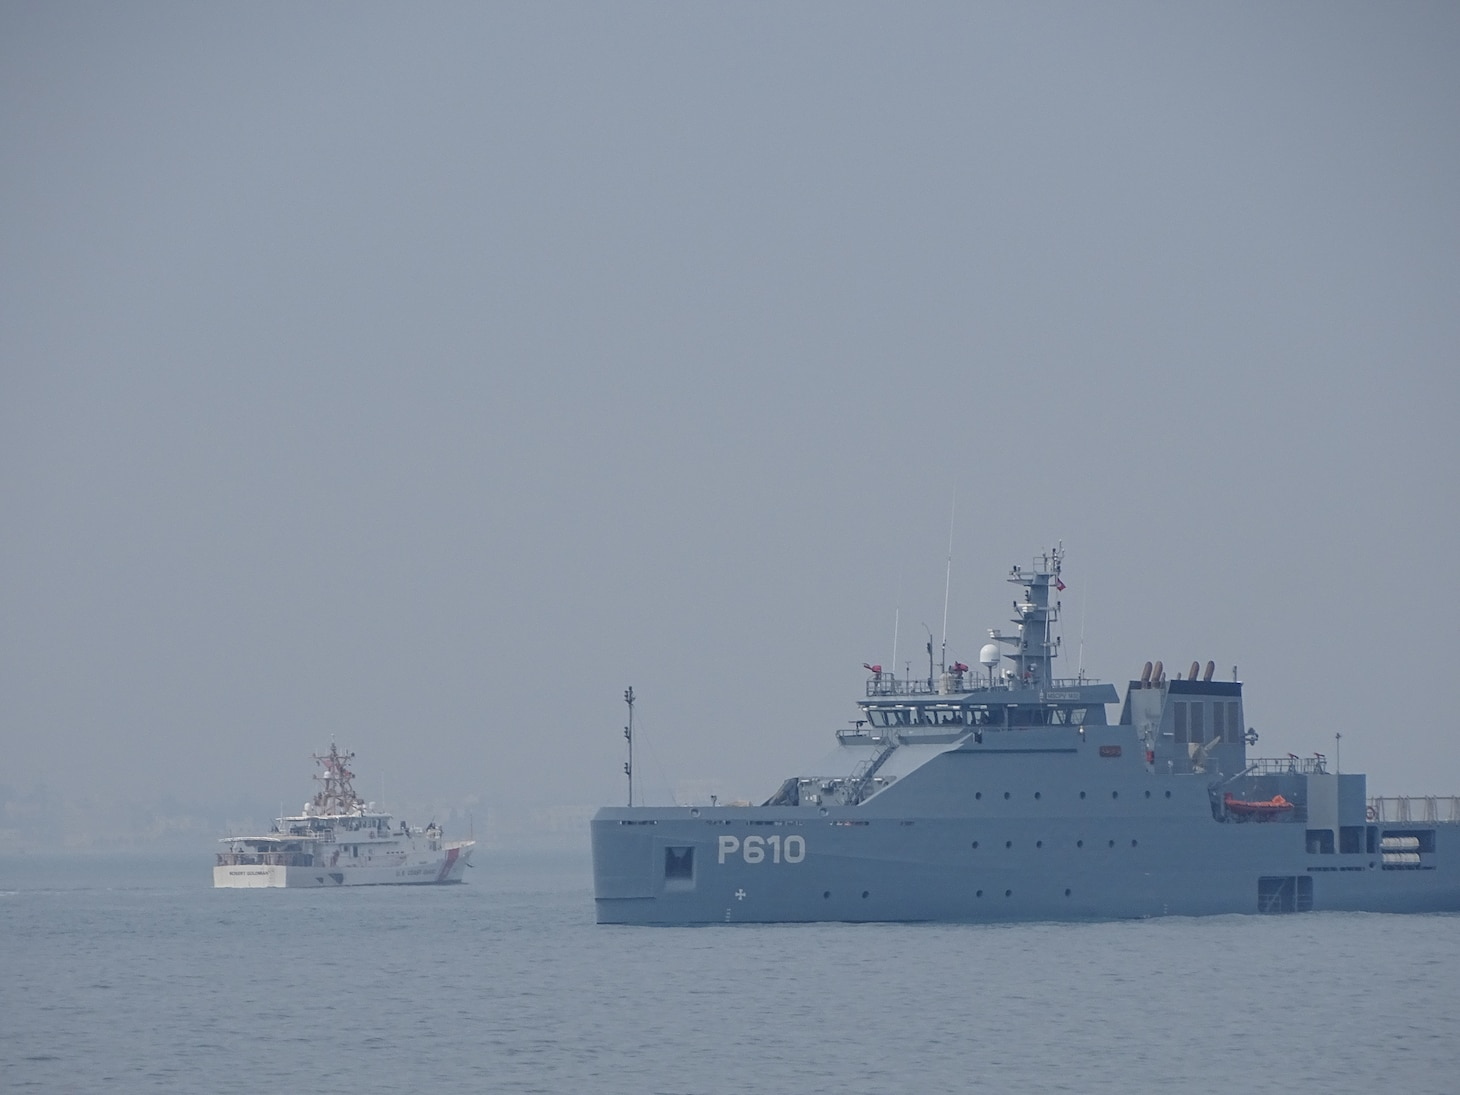 USCGC Robert Goldman (WPC 1142) and Tunisian Naval offshore patrol vessel Jugurtha (P610) escorted the two U.S. Coast Guard vessels inbound on April 21, 2021. USCGC Charles Moulthrope (WPC 1141) and Robert Goldman are en route to their new homeport in Bahrain in support of the Navy's U.S. Fifth Fleet and U.S. Coast Guard Patrol Forces Southwest Asia.